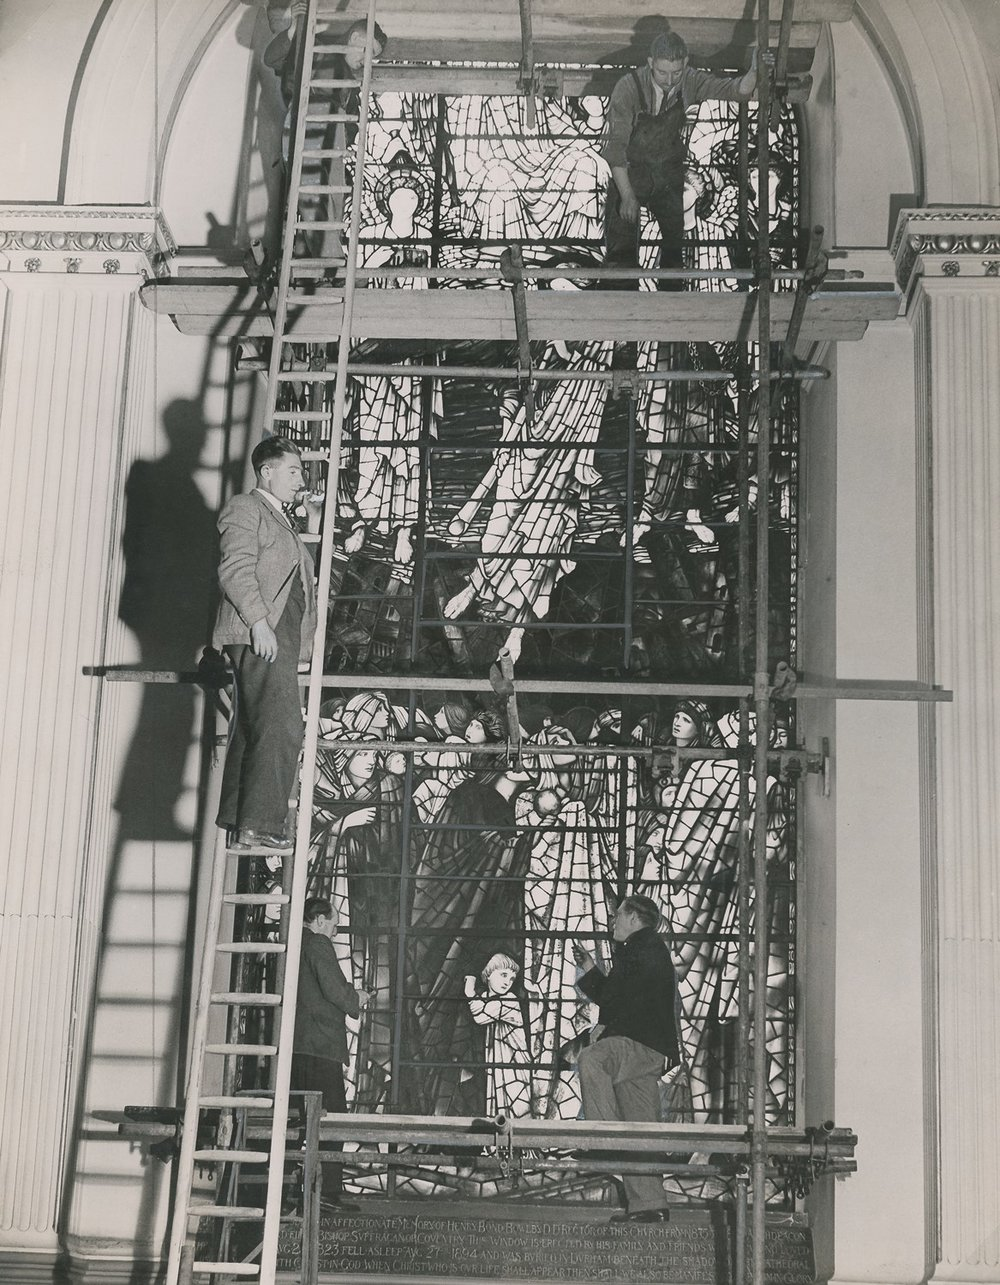 Men-up-ladder-removing-BJ-windows-during-WWII.jpg